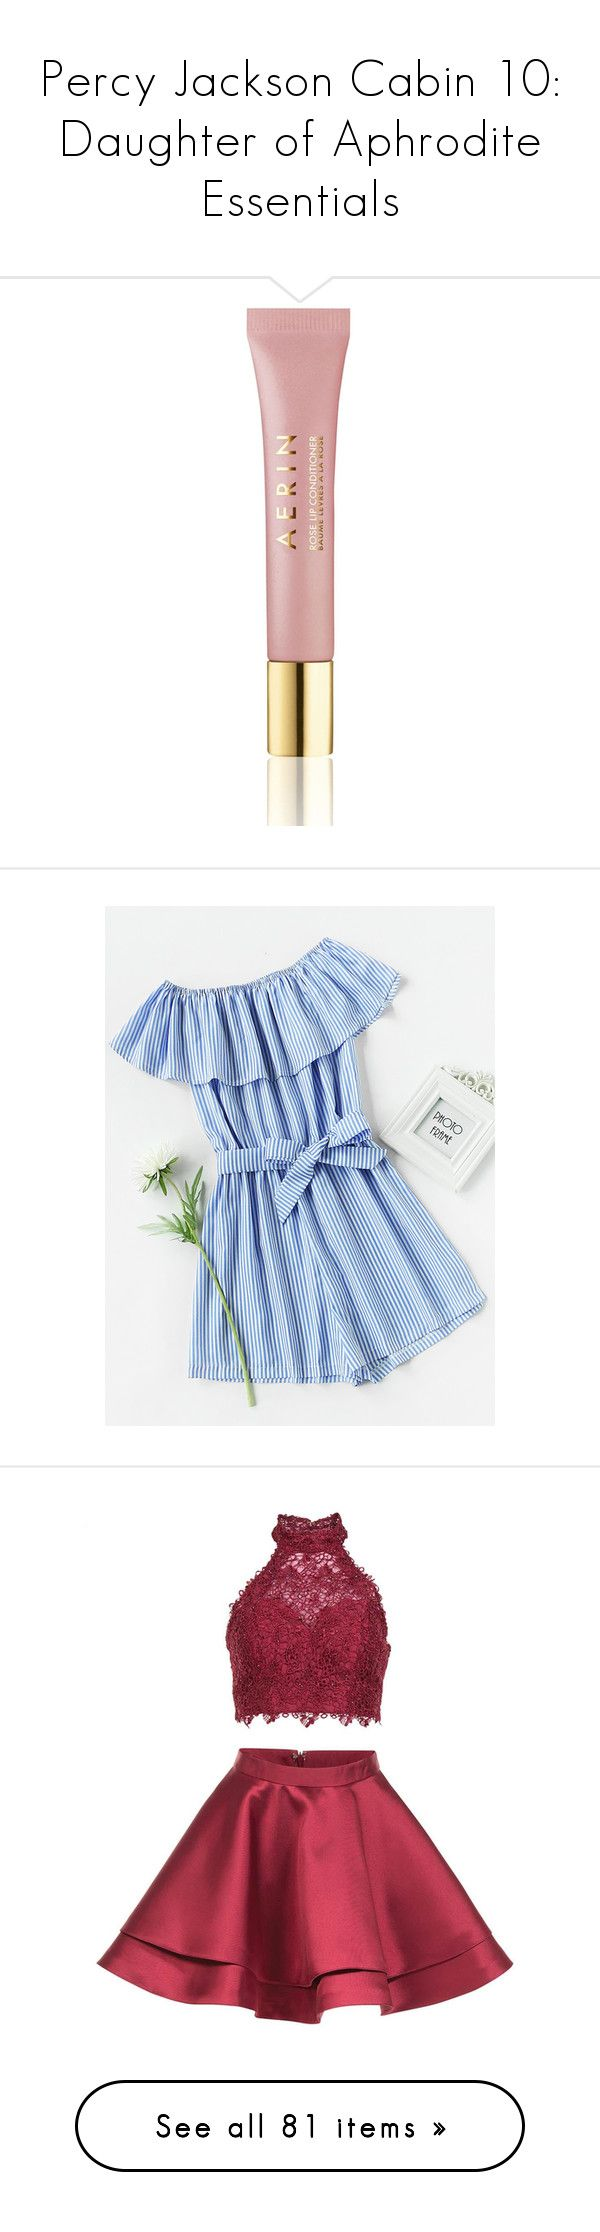 """""""Percy Jackson Cabin 10: Daughter of Aphrodite Essentials"""" by camemckeith on Polyvore featuring beauty products, skincare, lip care, lip treatments, makeup, jumpsuits, rompers, blue, striped romper and blue romper"""